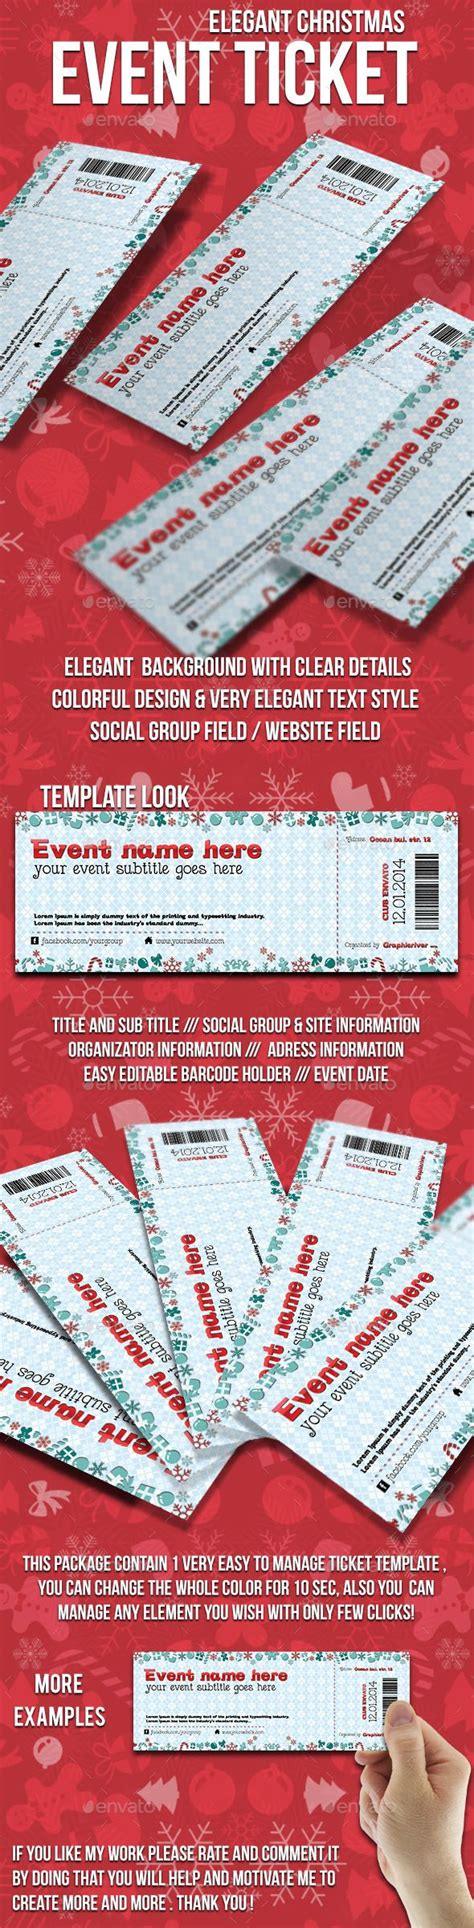 25 Best Ideas About Event Ticket Template On Pinterest Event Tickets Event Ticket Printing Event Ticket Printing Template